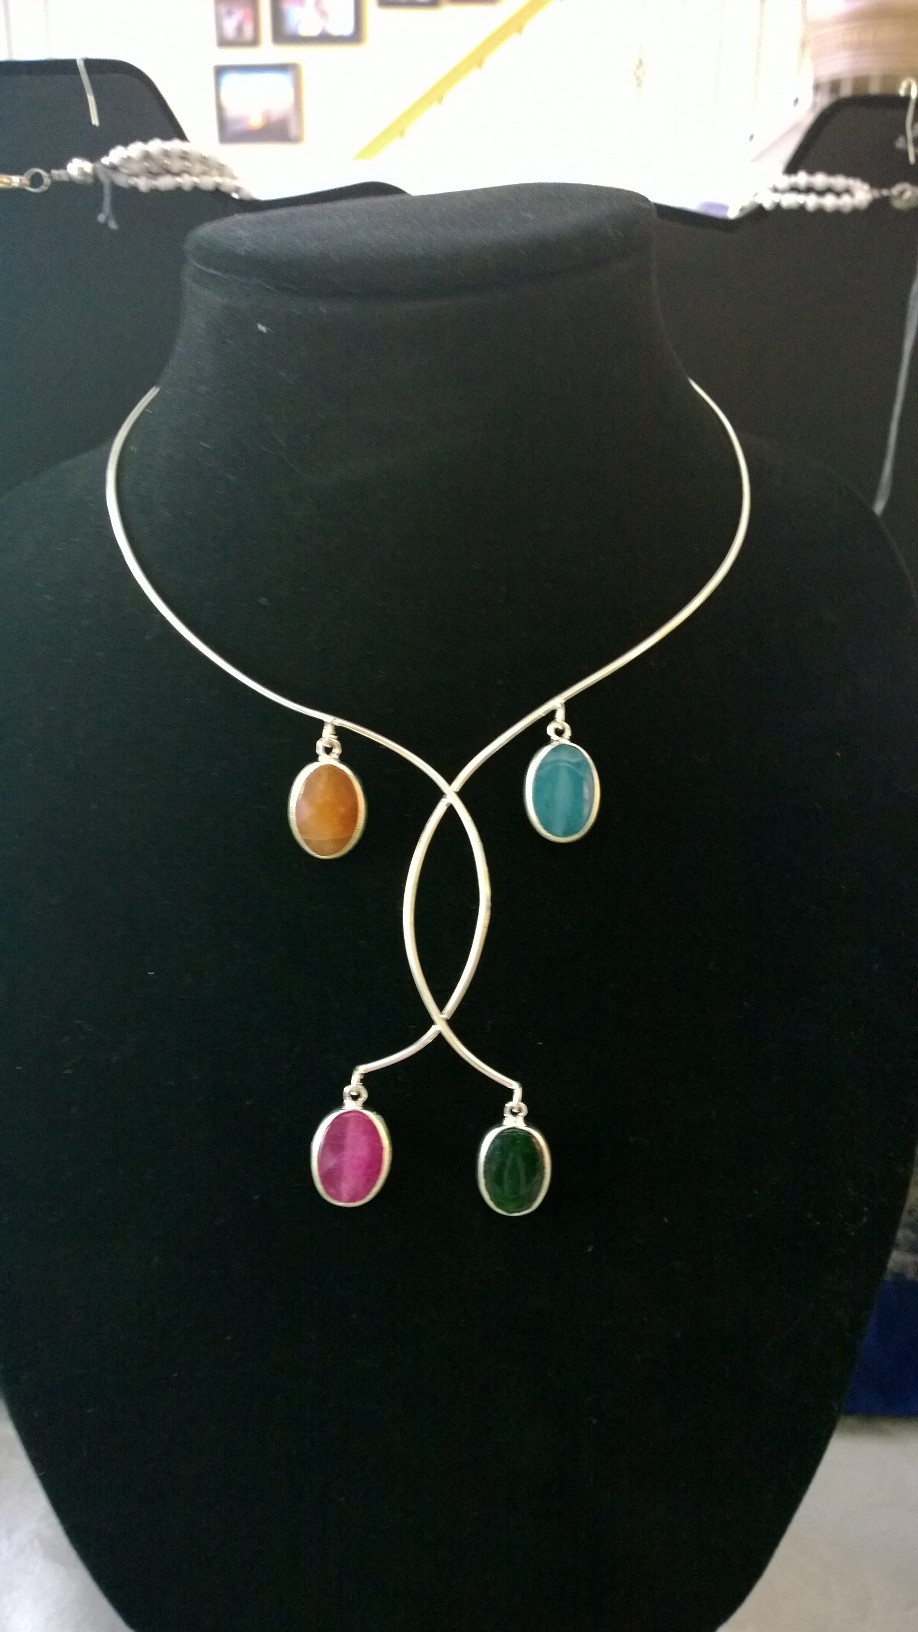 Wired Four Seasons Necklace 1N17